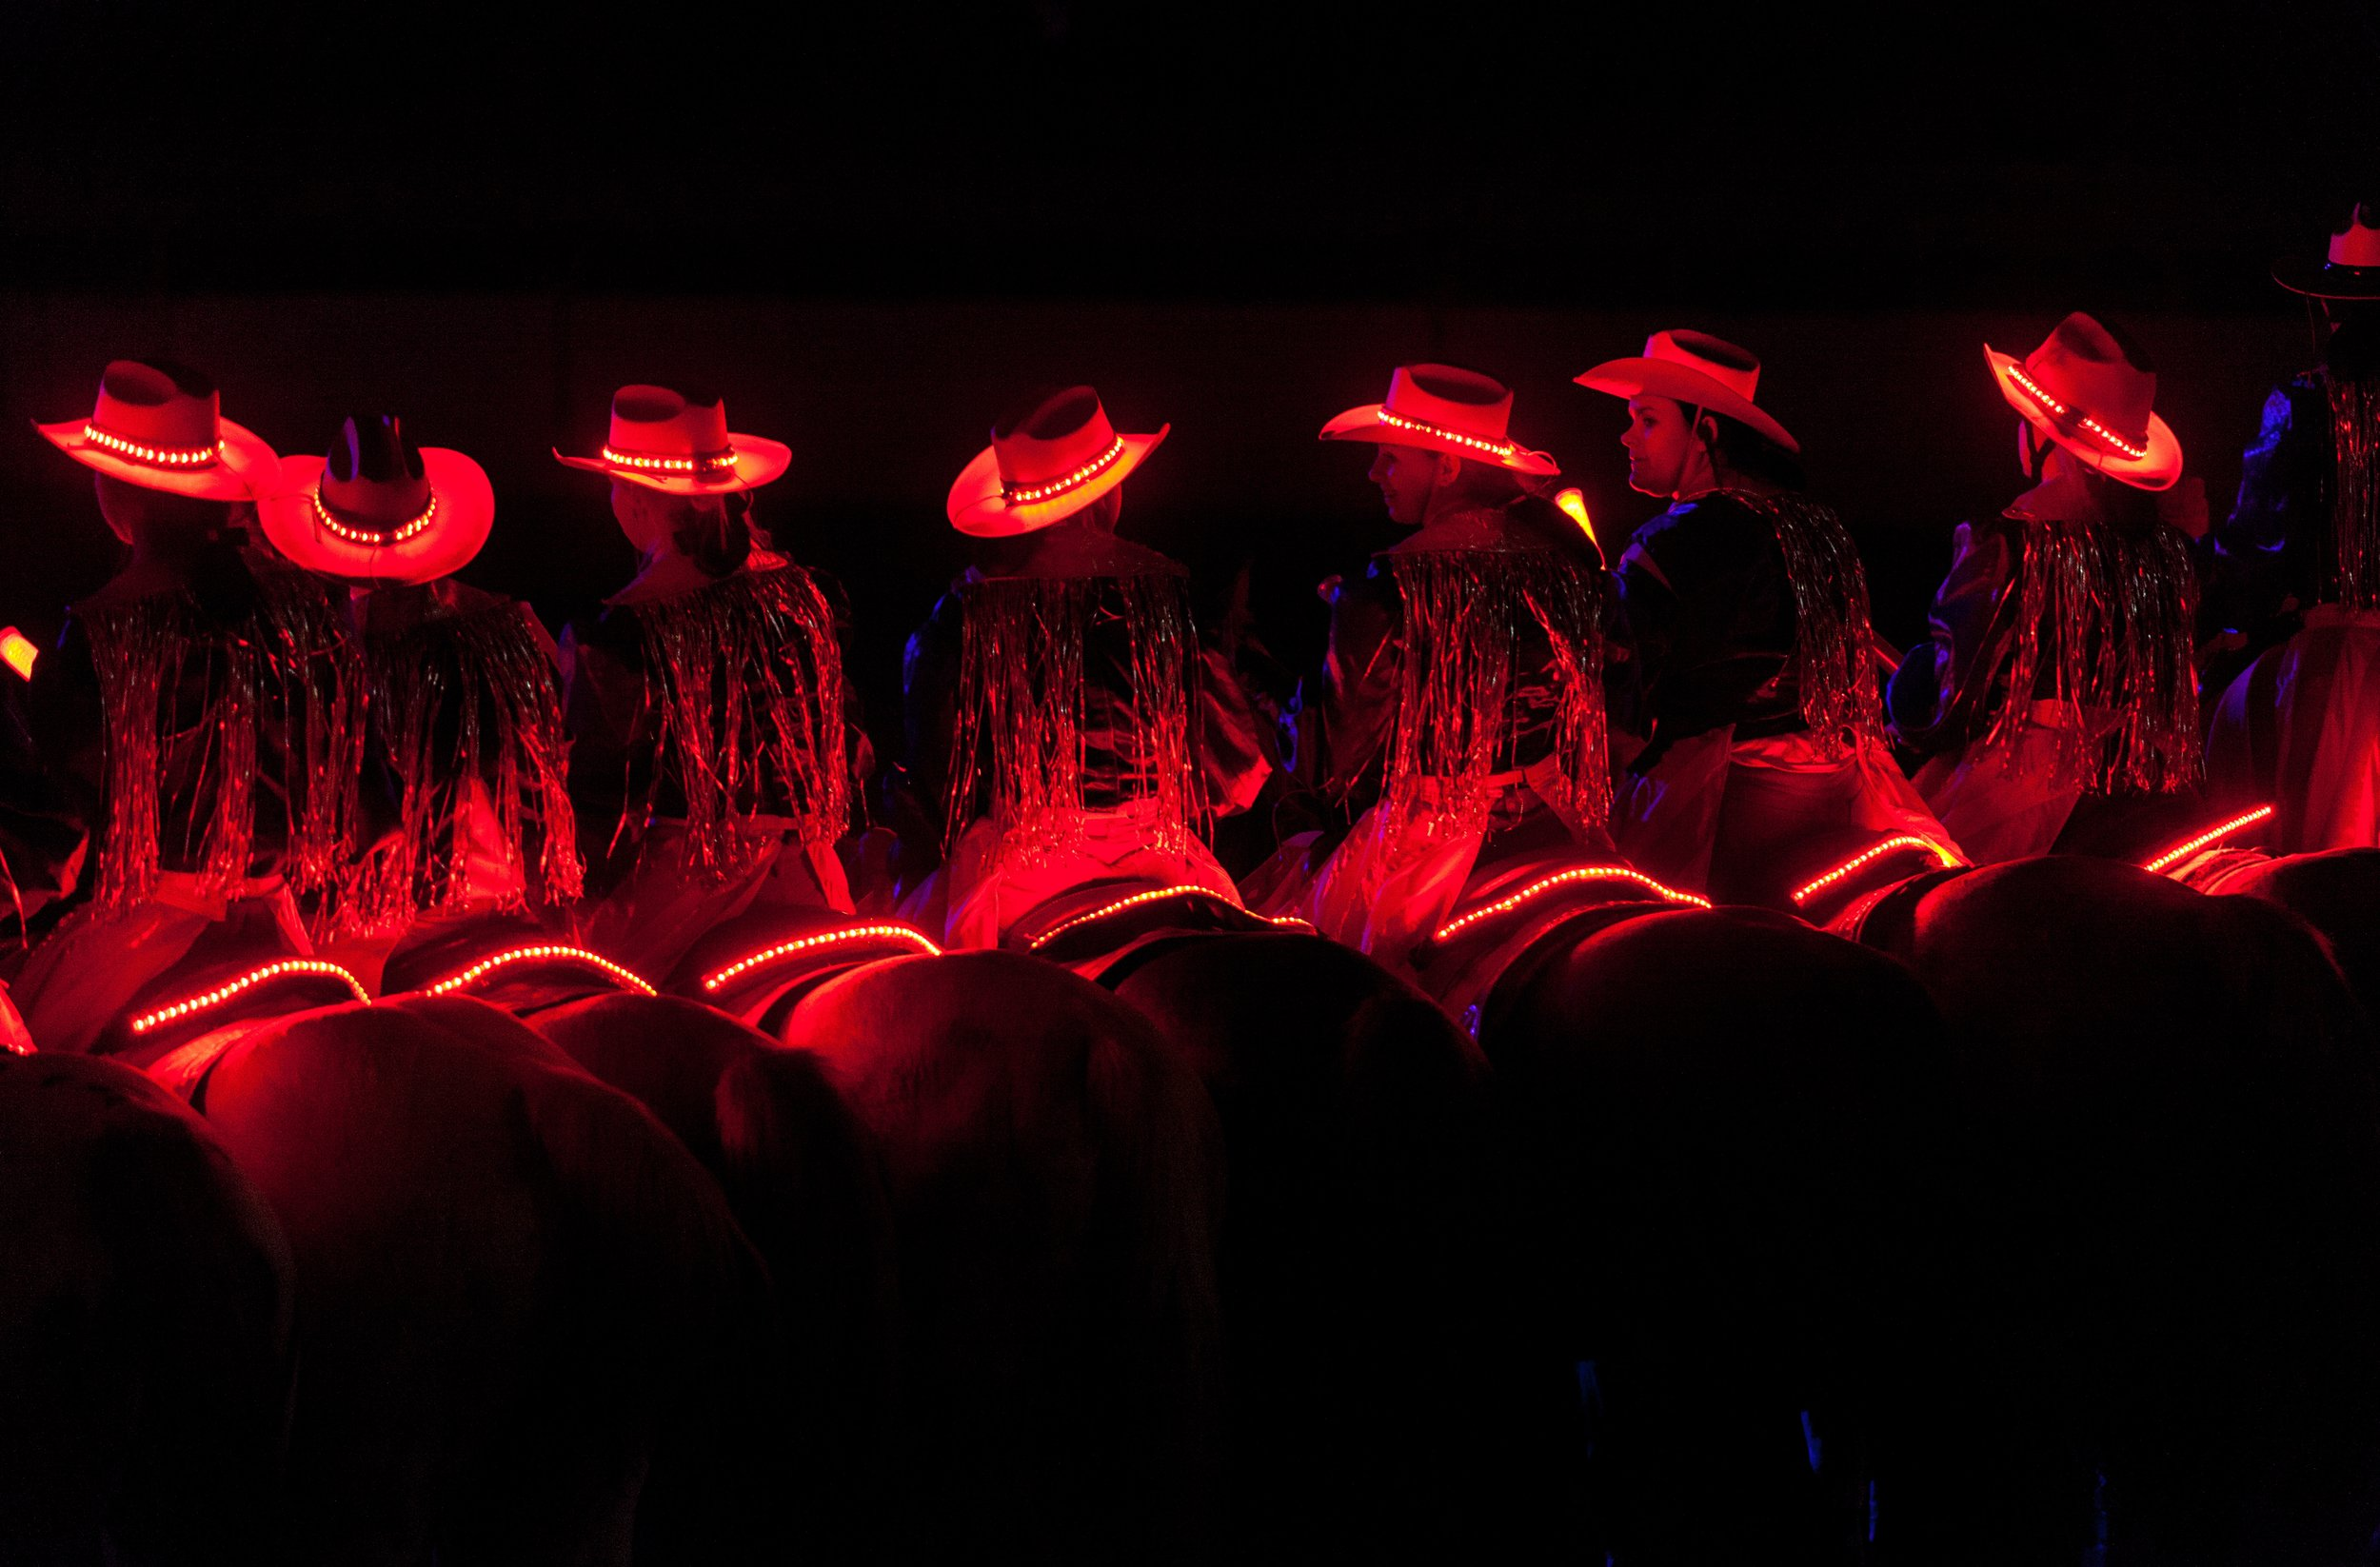 Firelight Finale 10-28-2017 Annual Show Red Team Lights.jpg